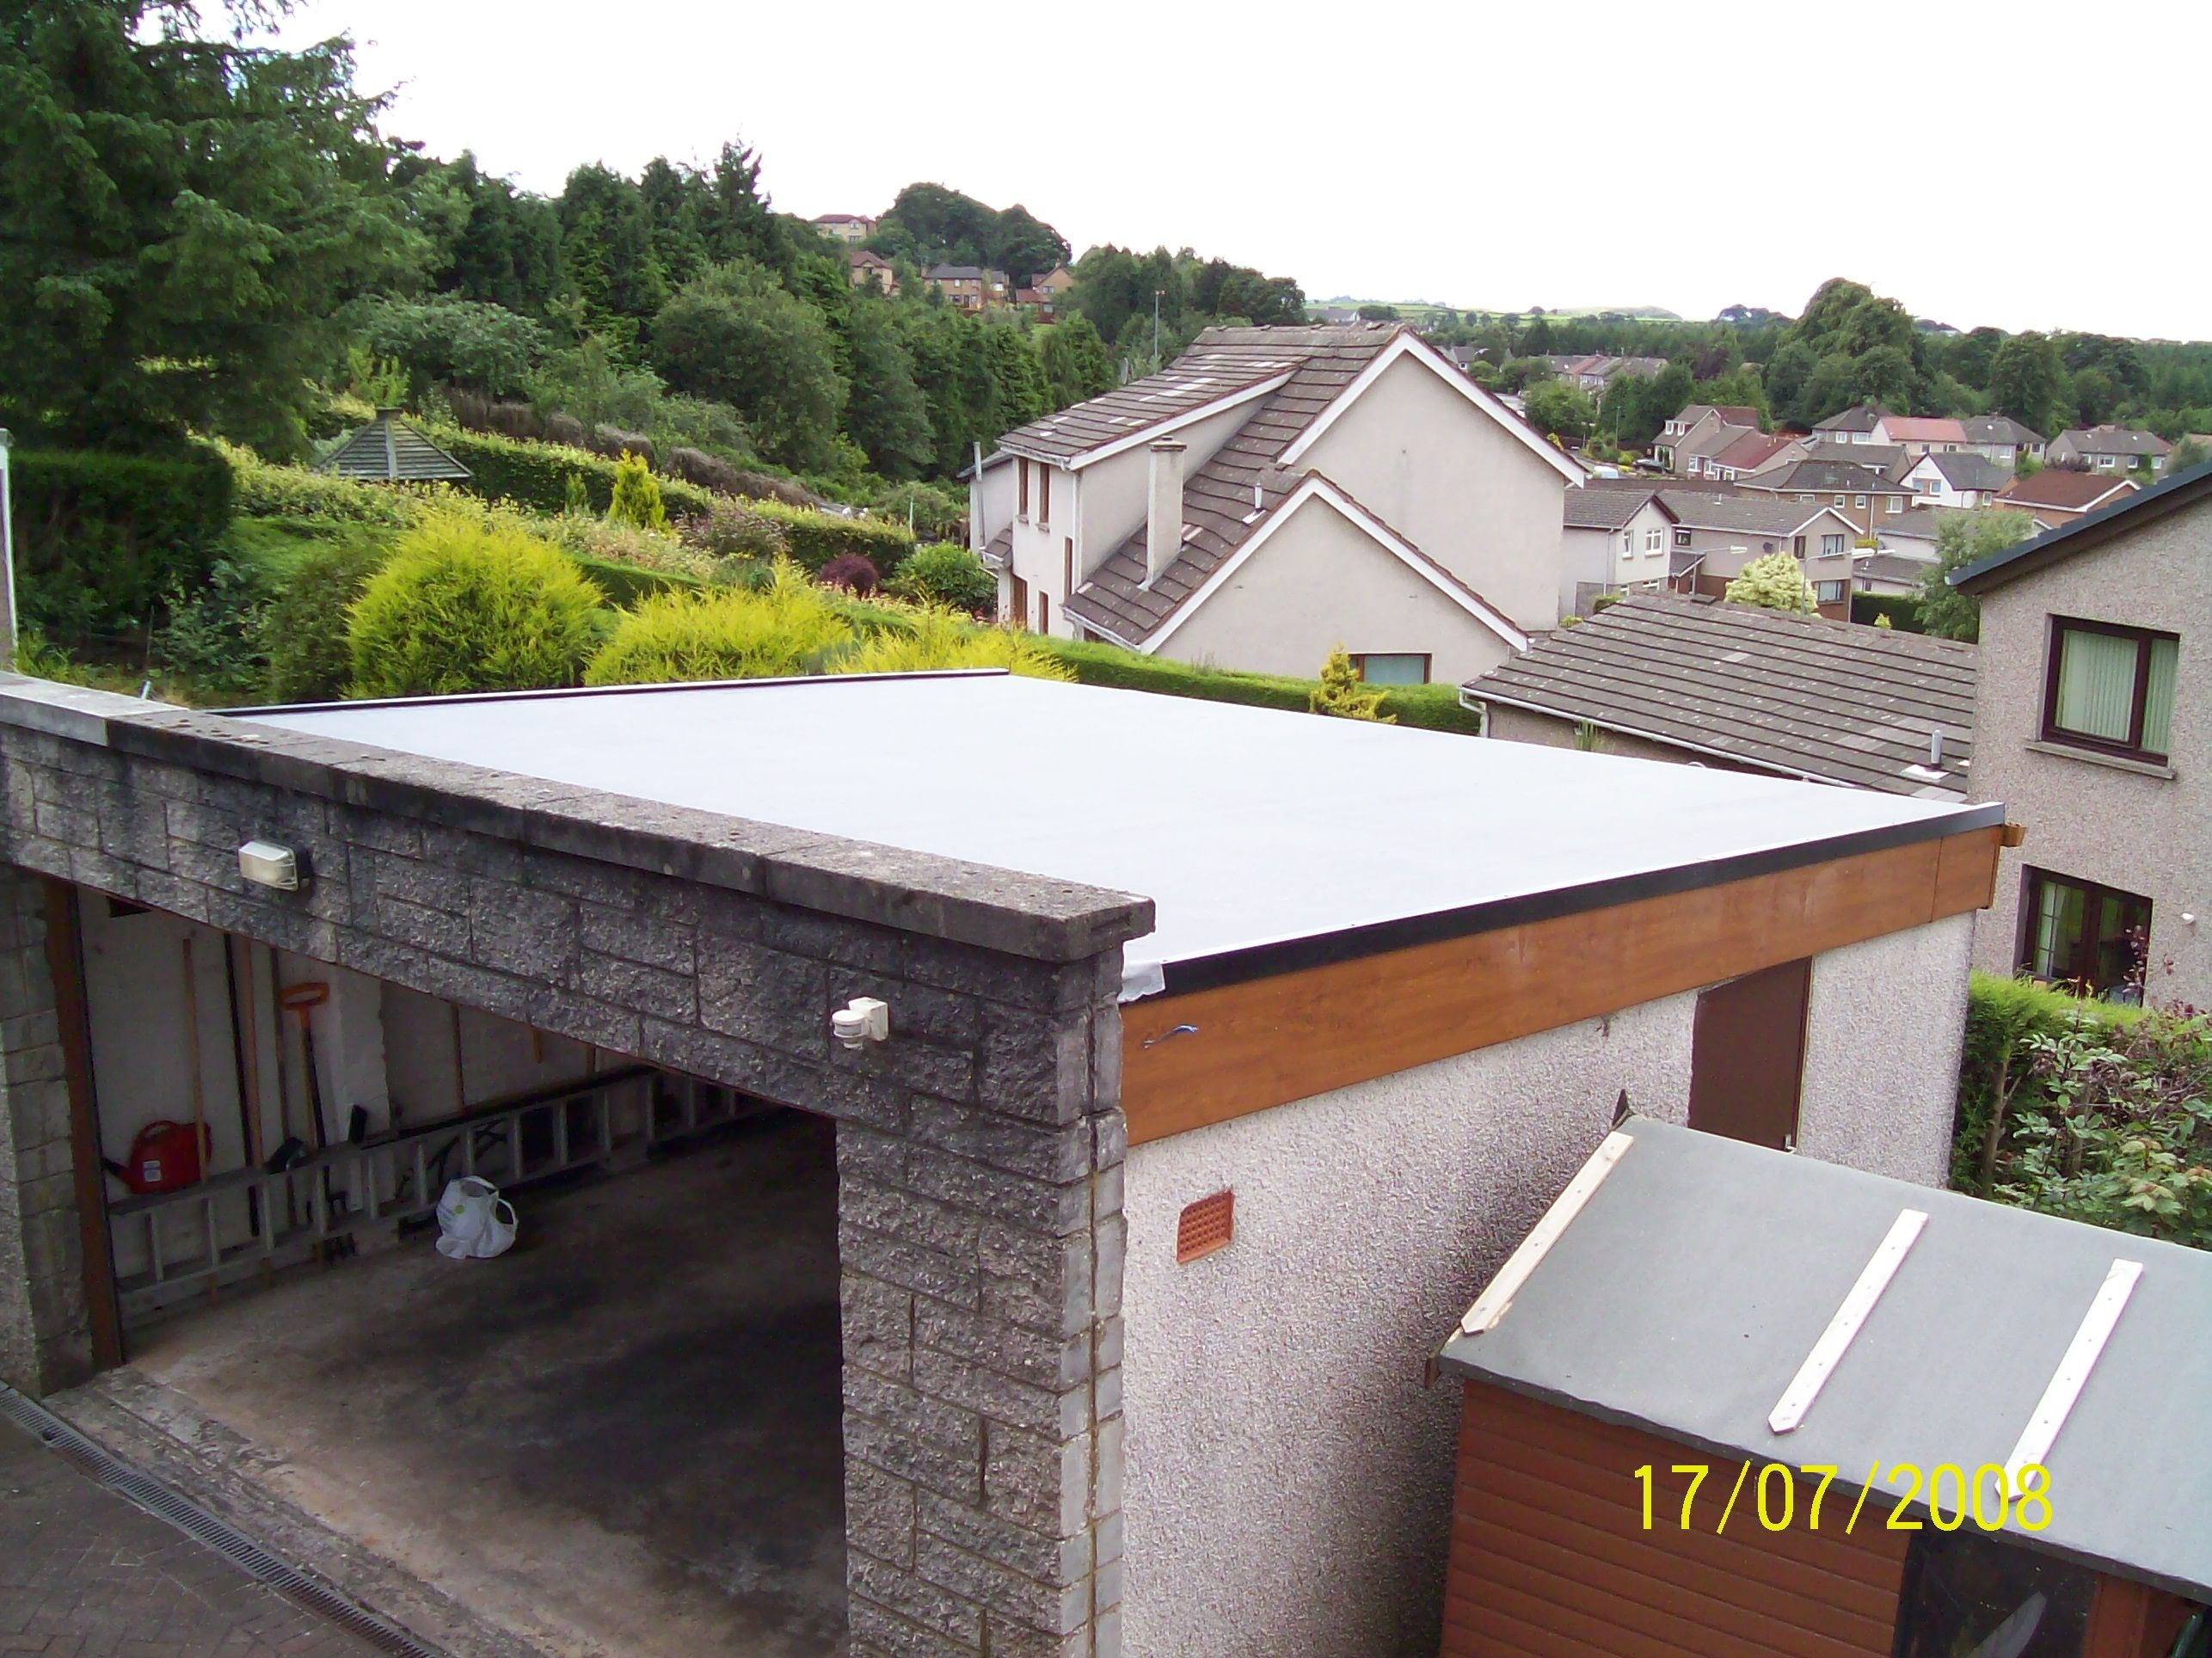 Flat Roofs Repair Replacement By Craftsman Cladding Flat